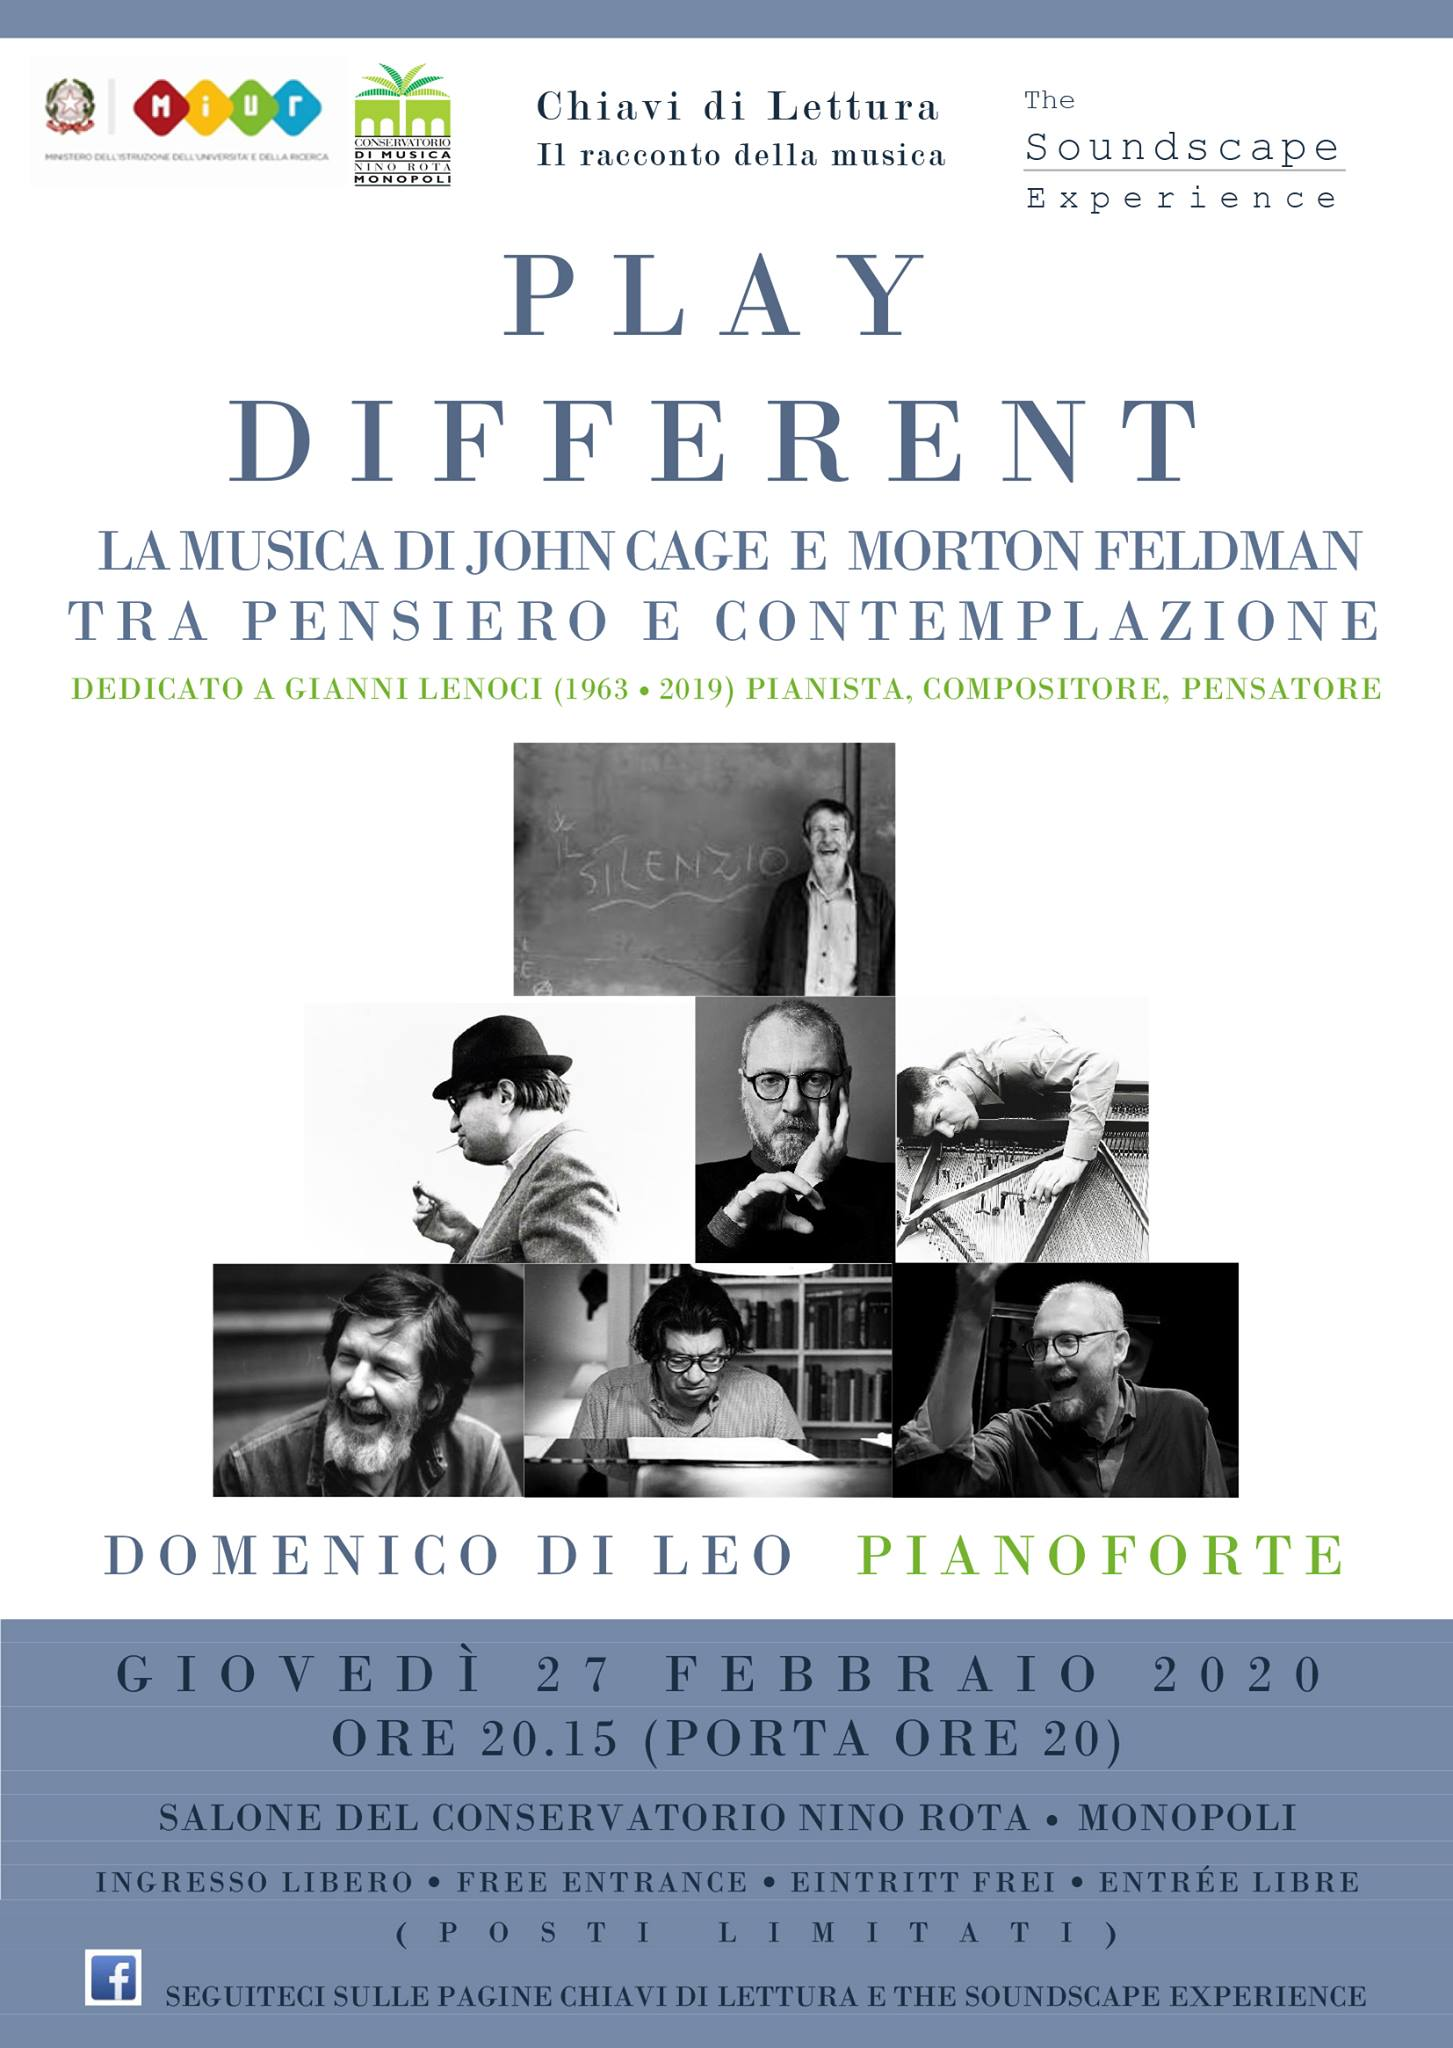 PLAY DIFFERENT: La musica di Cage e Feldman